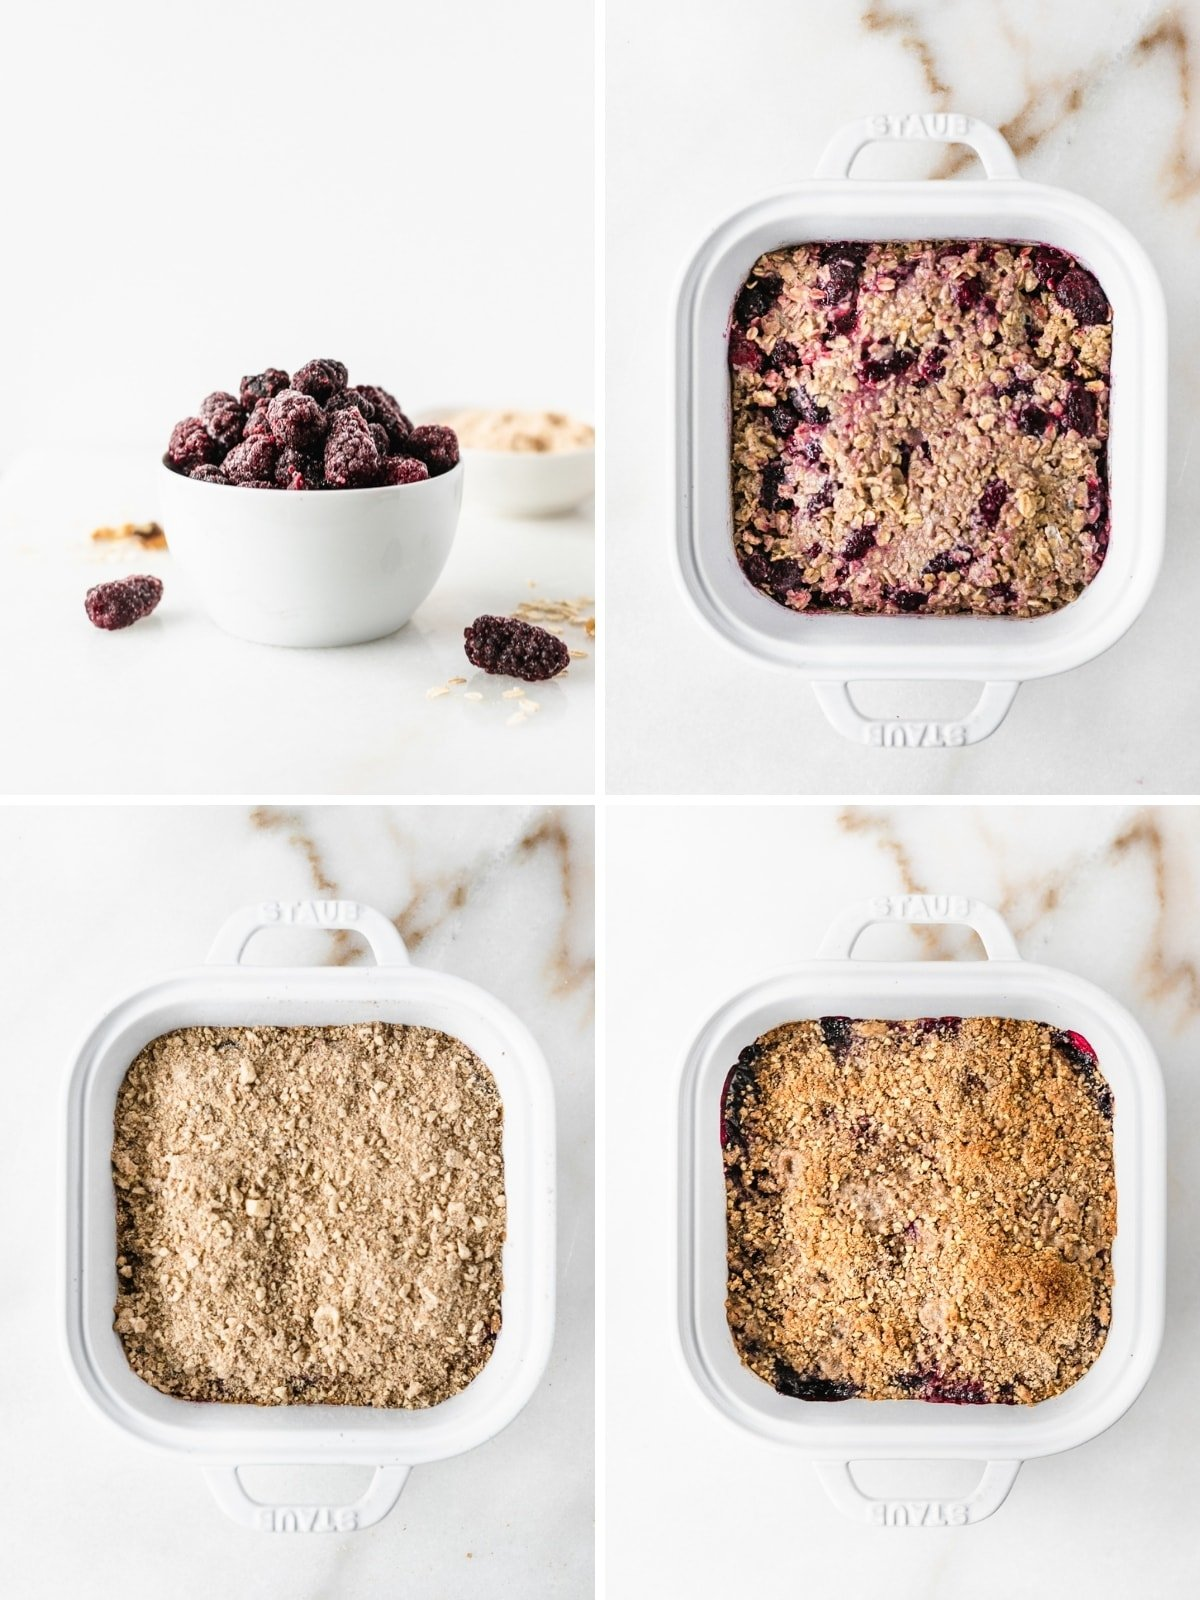 four image collage showing final steps for making blackberry crumble baked oatmeal.